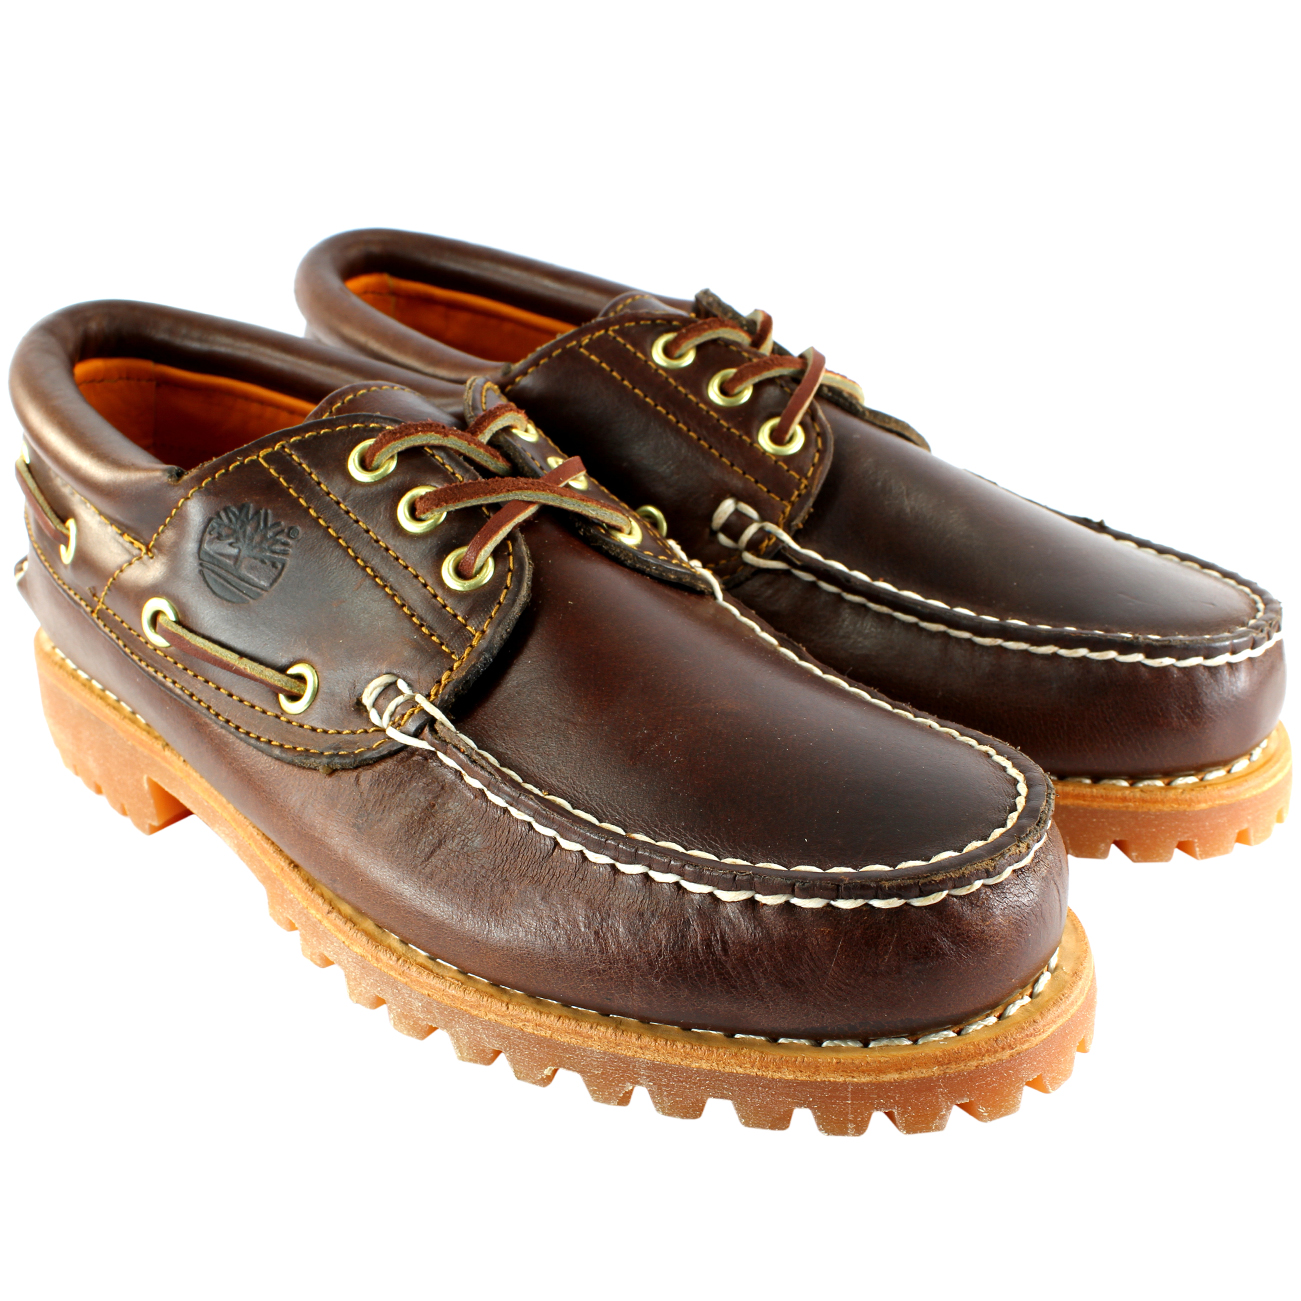 Timberland Heritage Classic Lug Boat Shoes